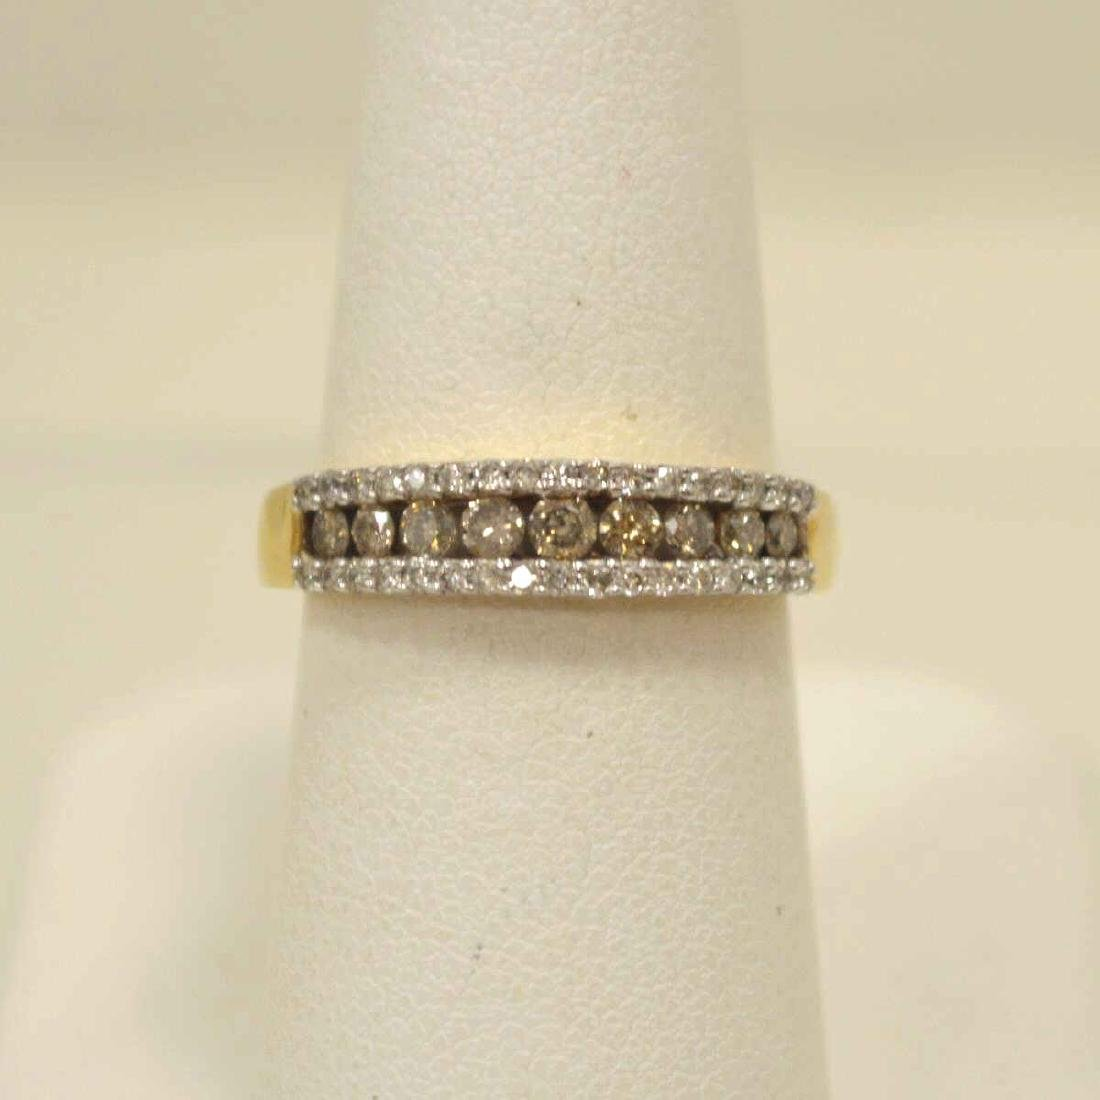 10kt yellow gold diamond fashion band